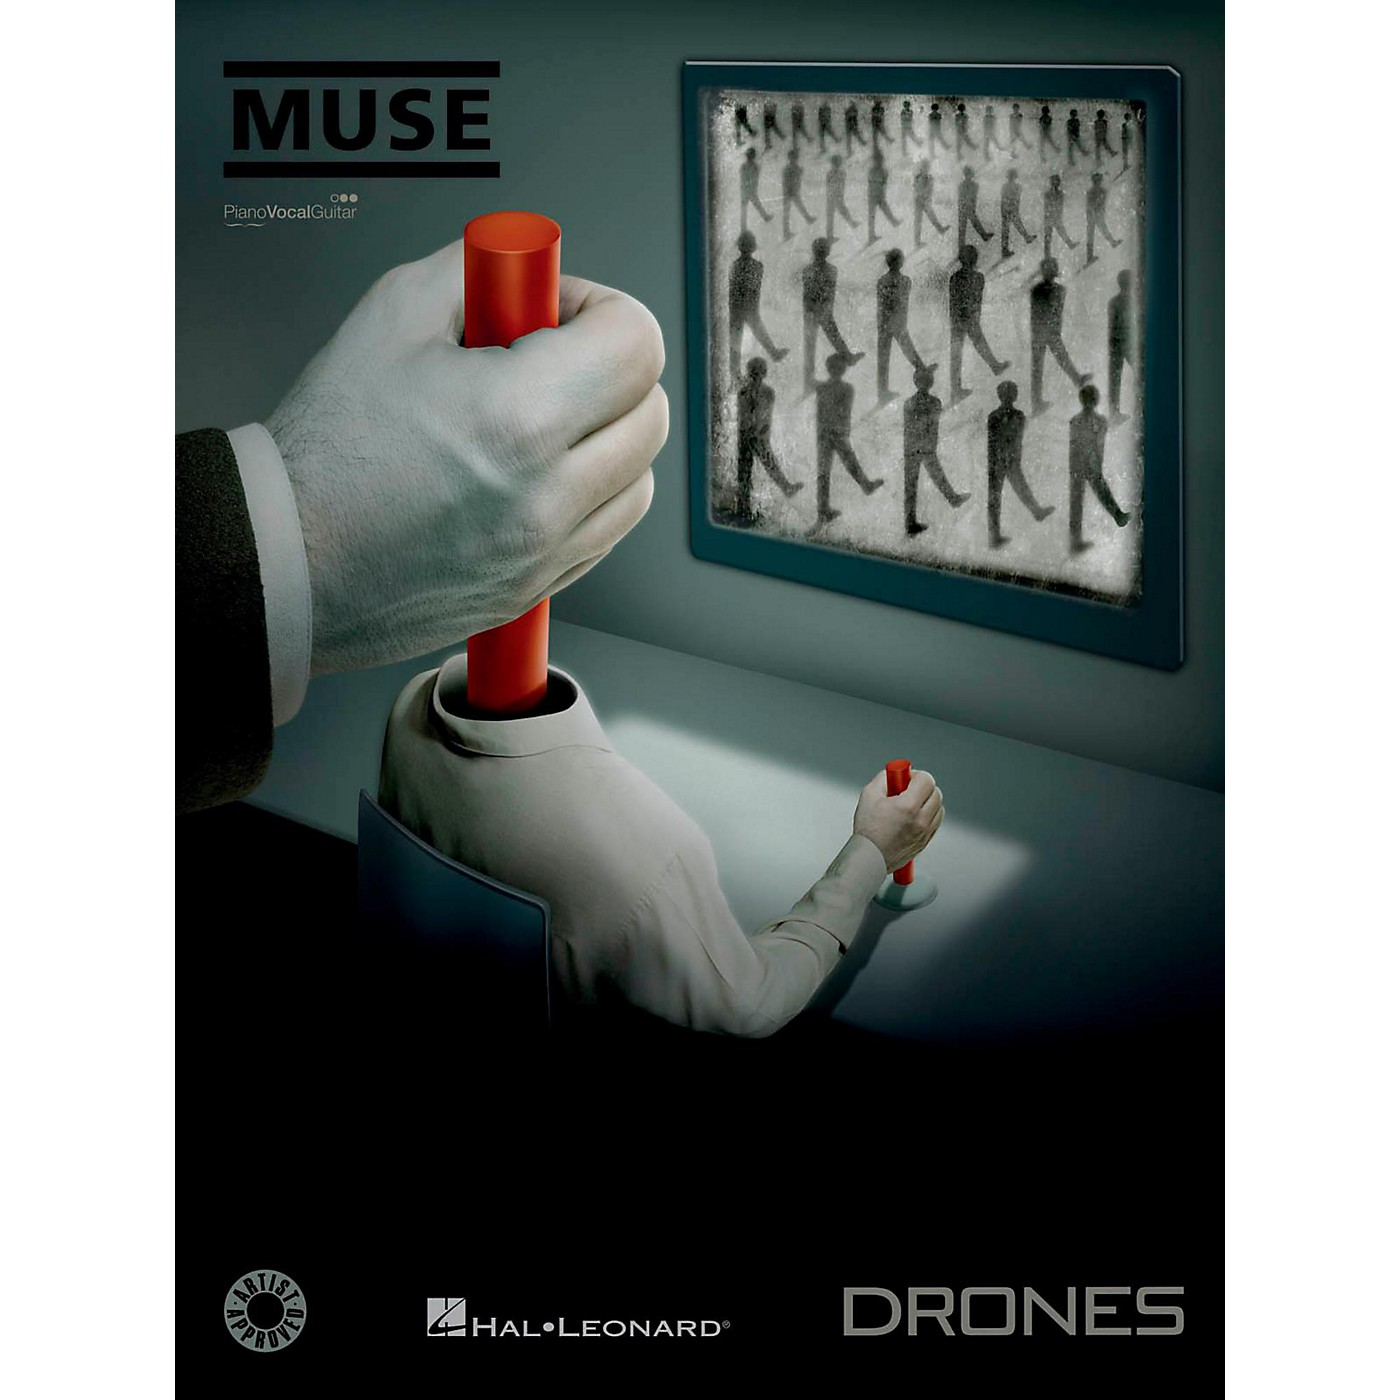 Hal Leonard Muse - Drones for Piano/Vocal/Guitar thumbnail